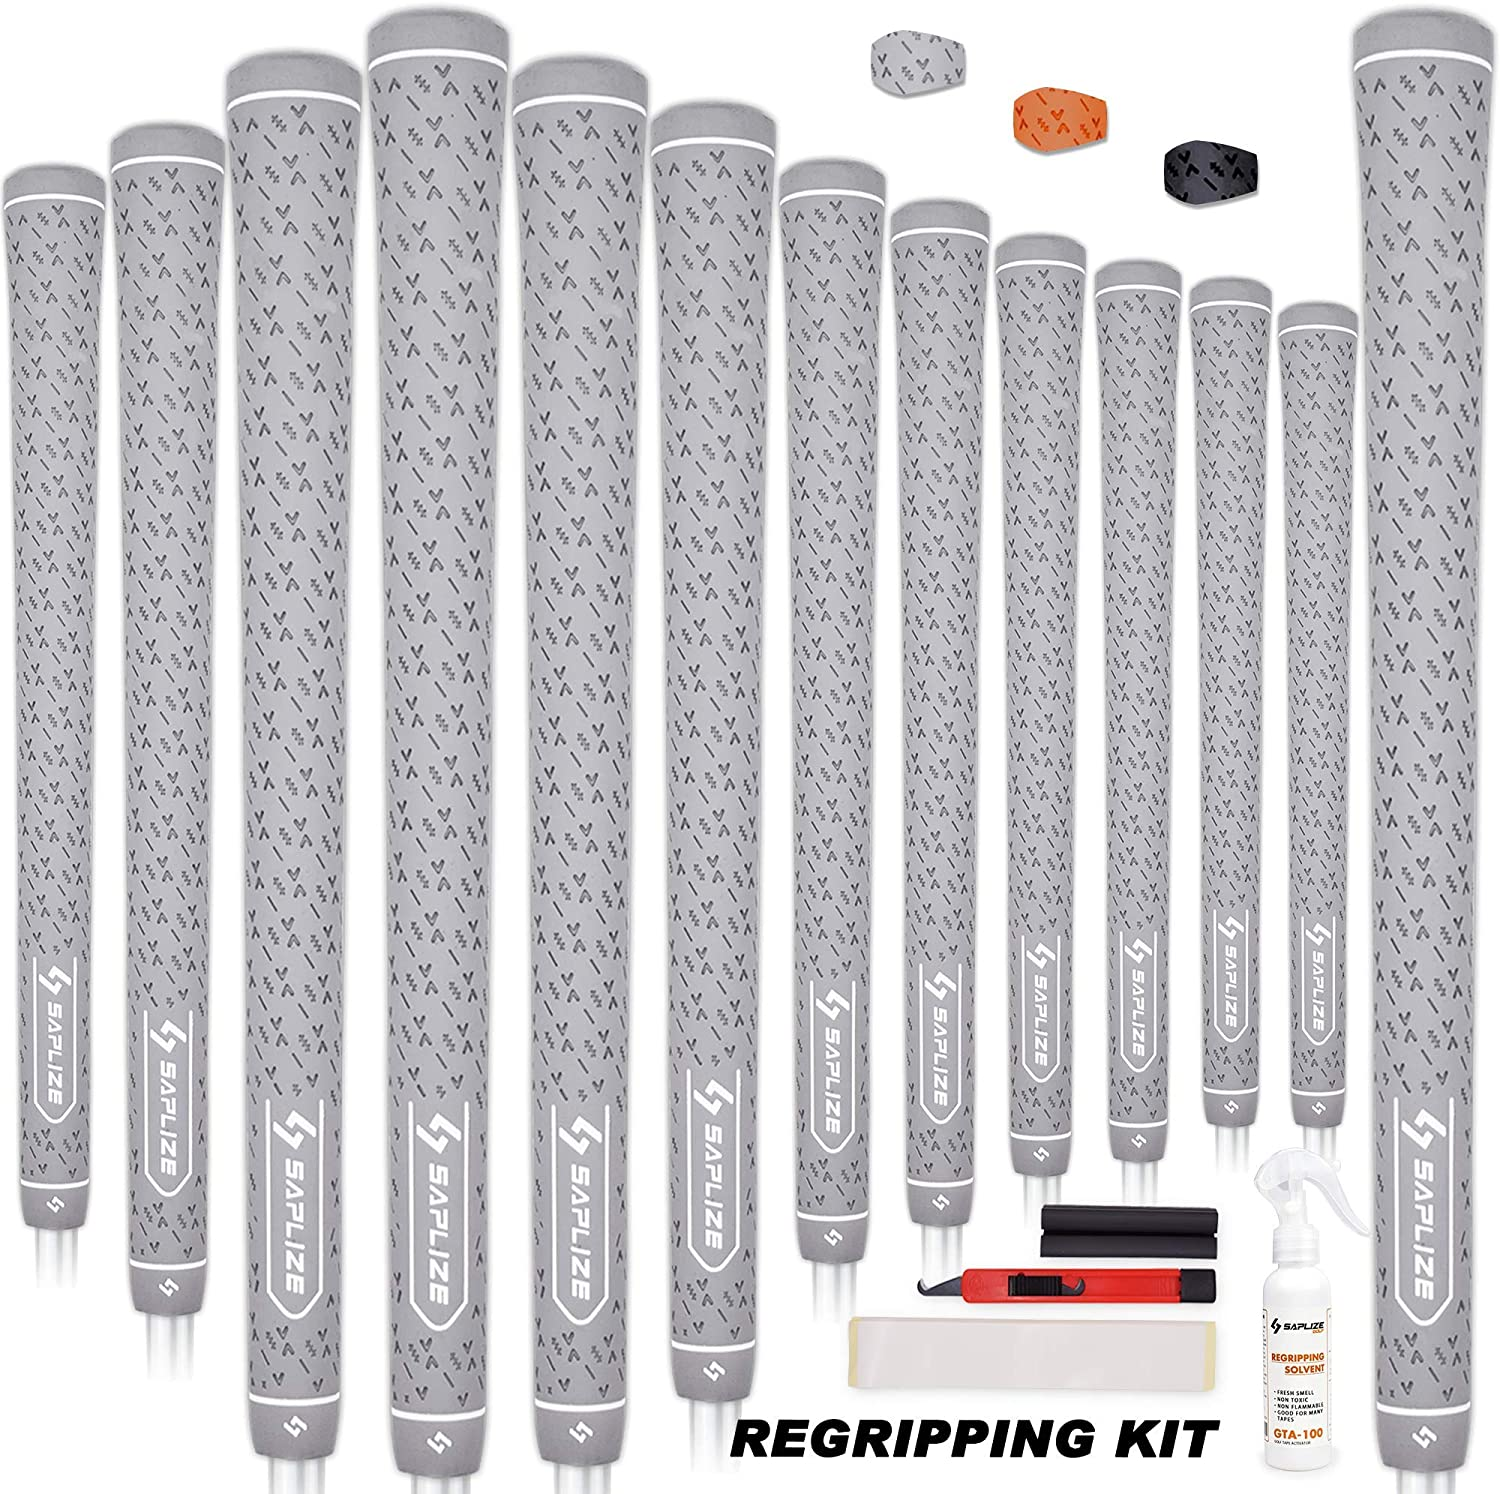 SAPLIZE Golf Grips, Standard/Midsize, 13 Pieces or 3 Test Grips with Full Regripping Kit All Weather Anti-Slip Rubber Golf Club Grips